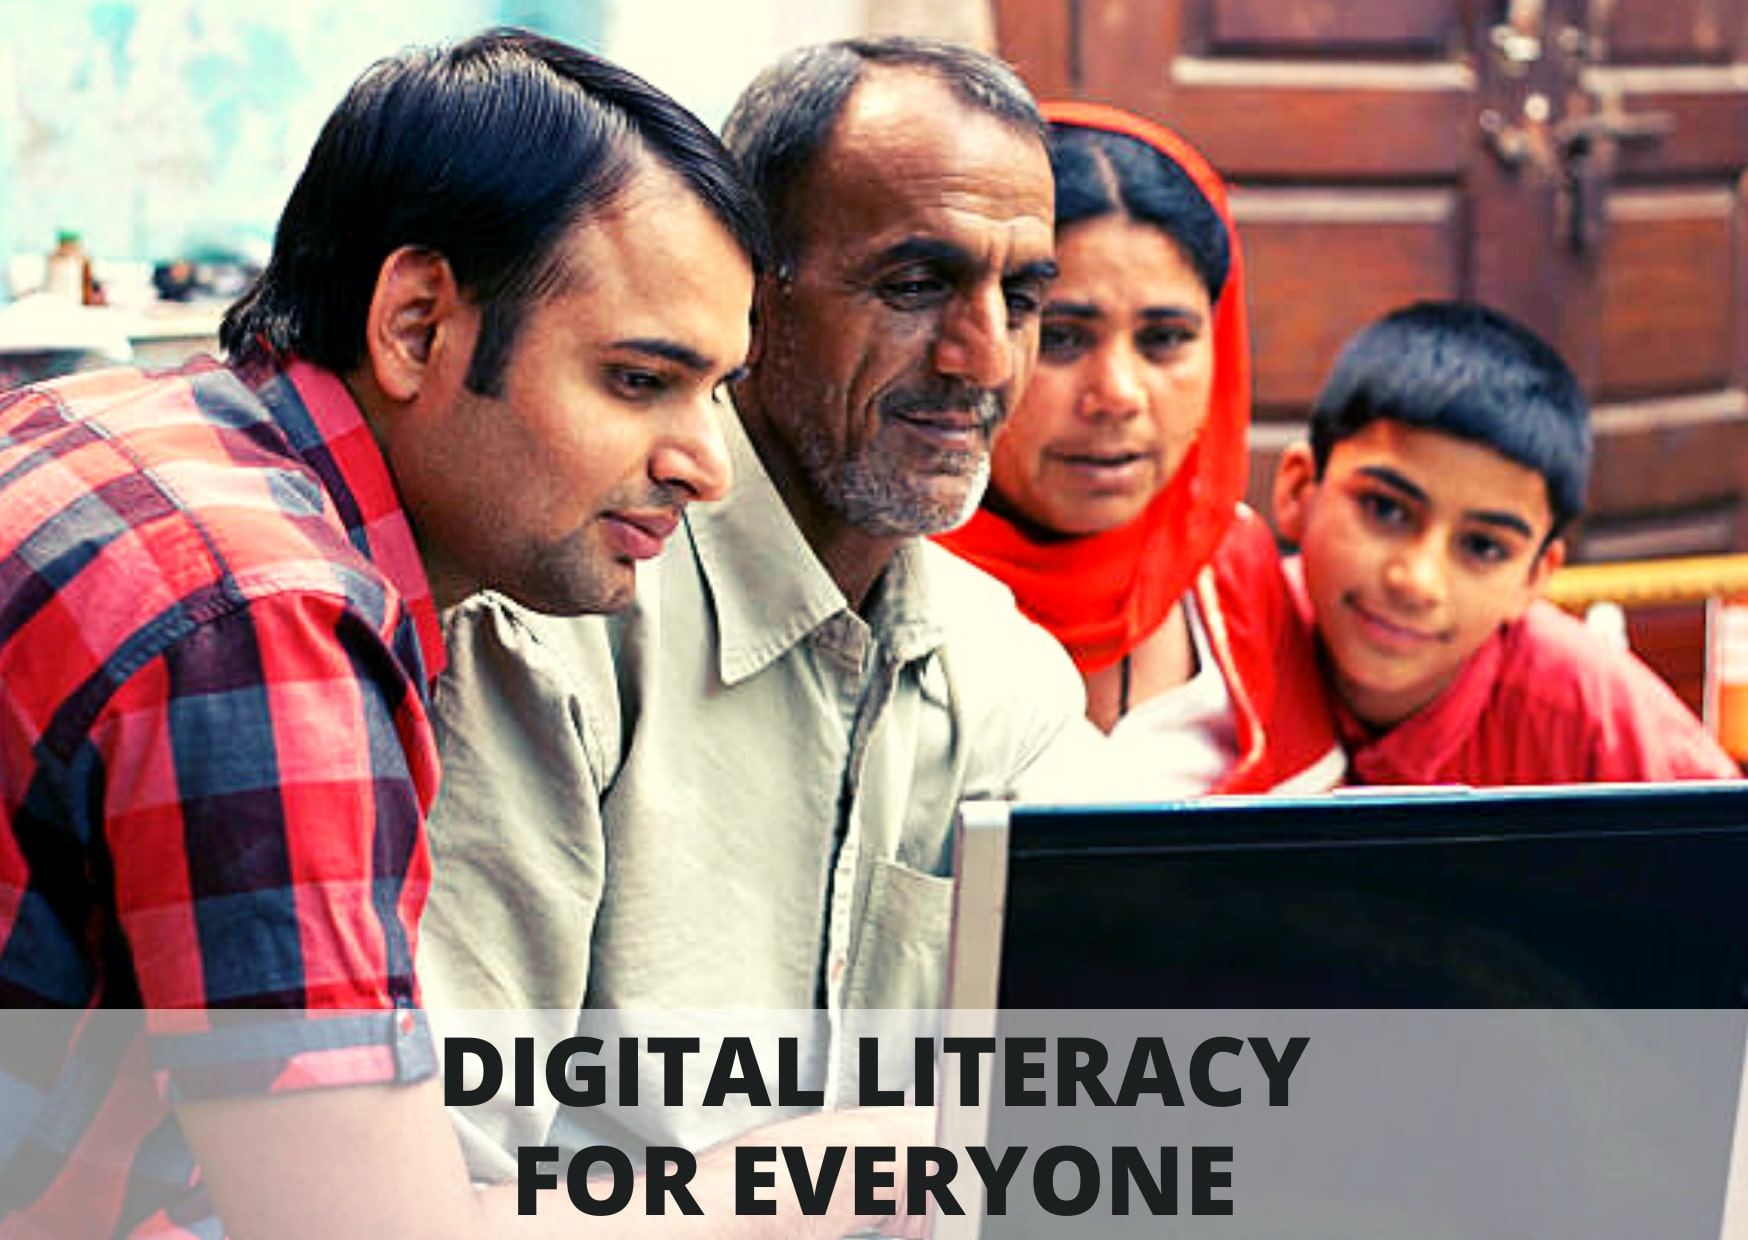 DIGITAL LITERACY IS A MUST FOR EVERYONE!